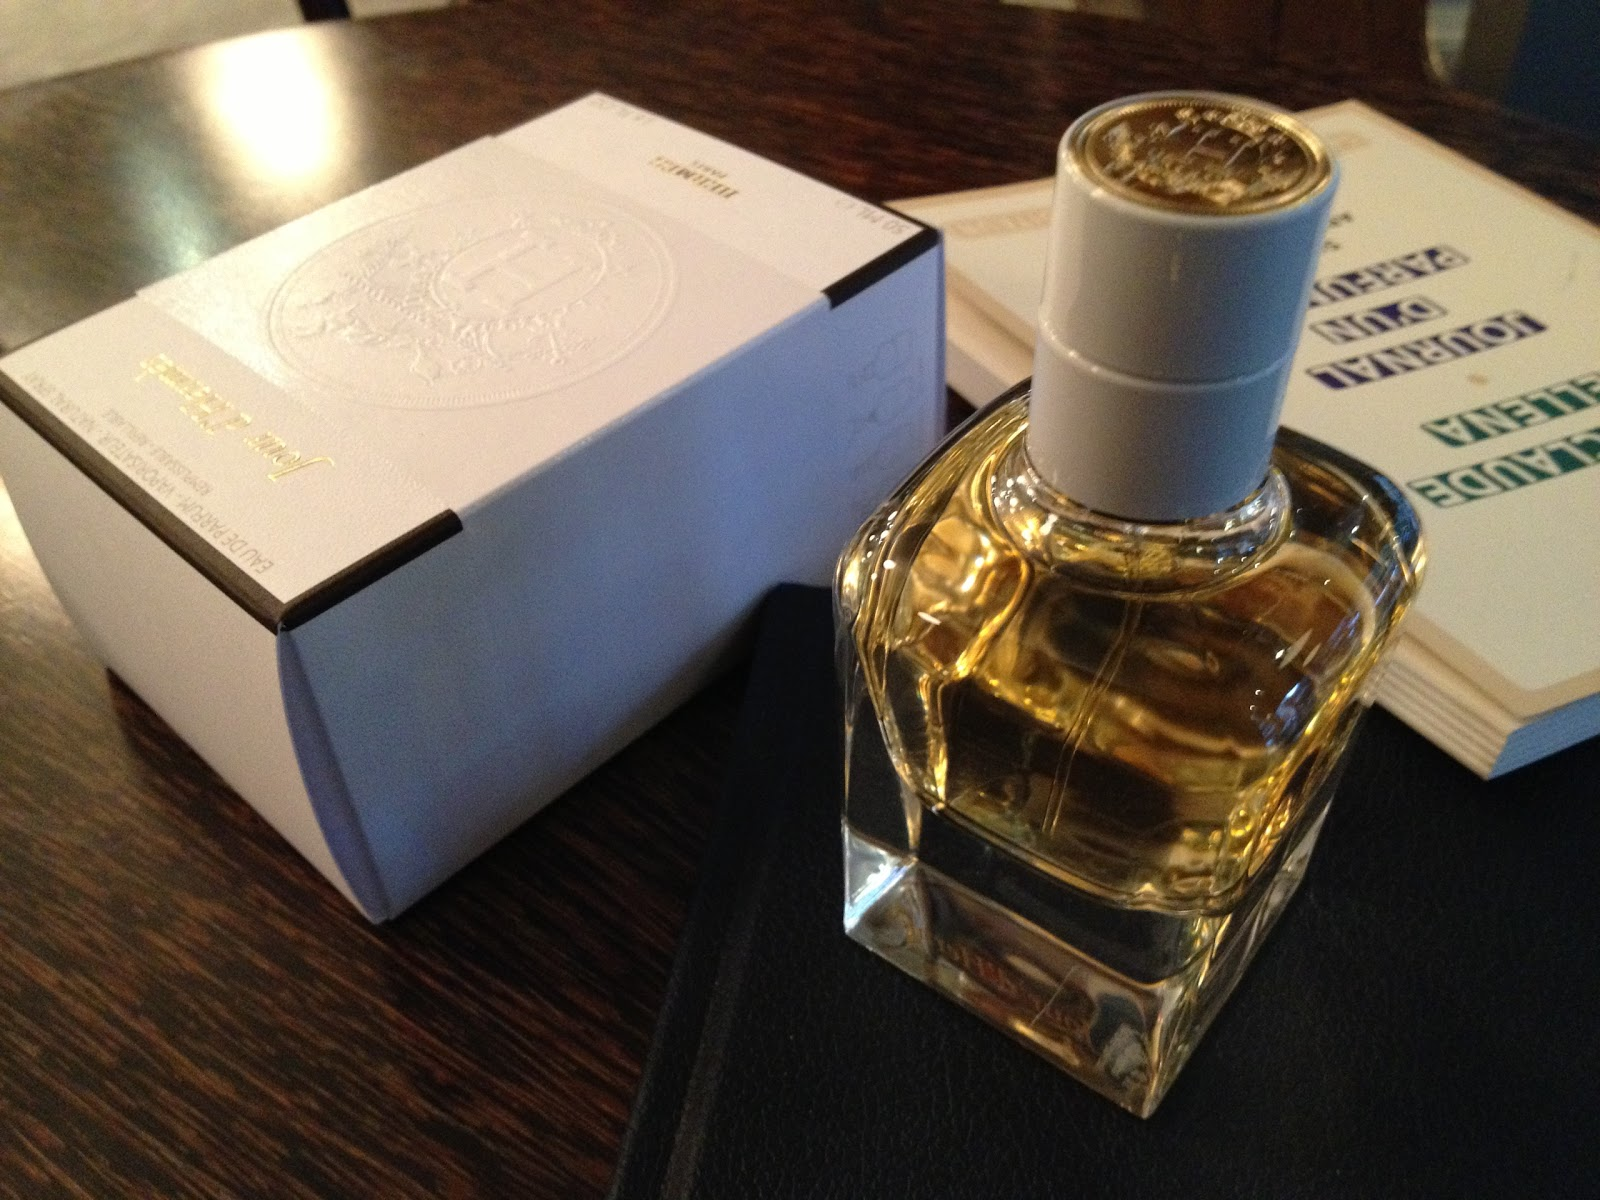 0e78c68c3 Hermes Jour d'Hermes: fragrance review & insights into fragrance creation